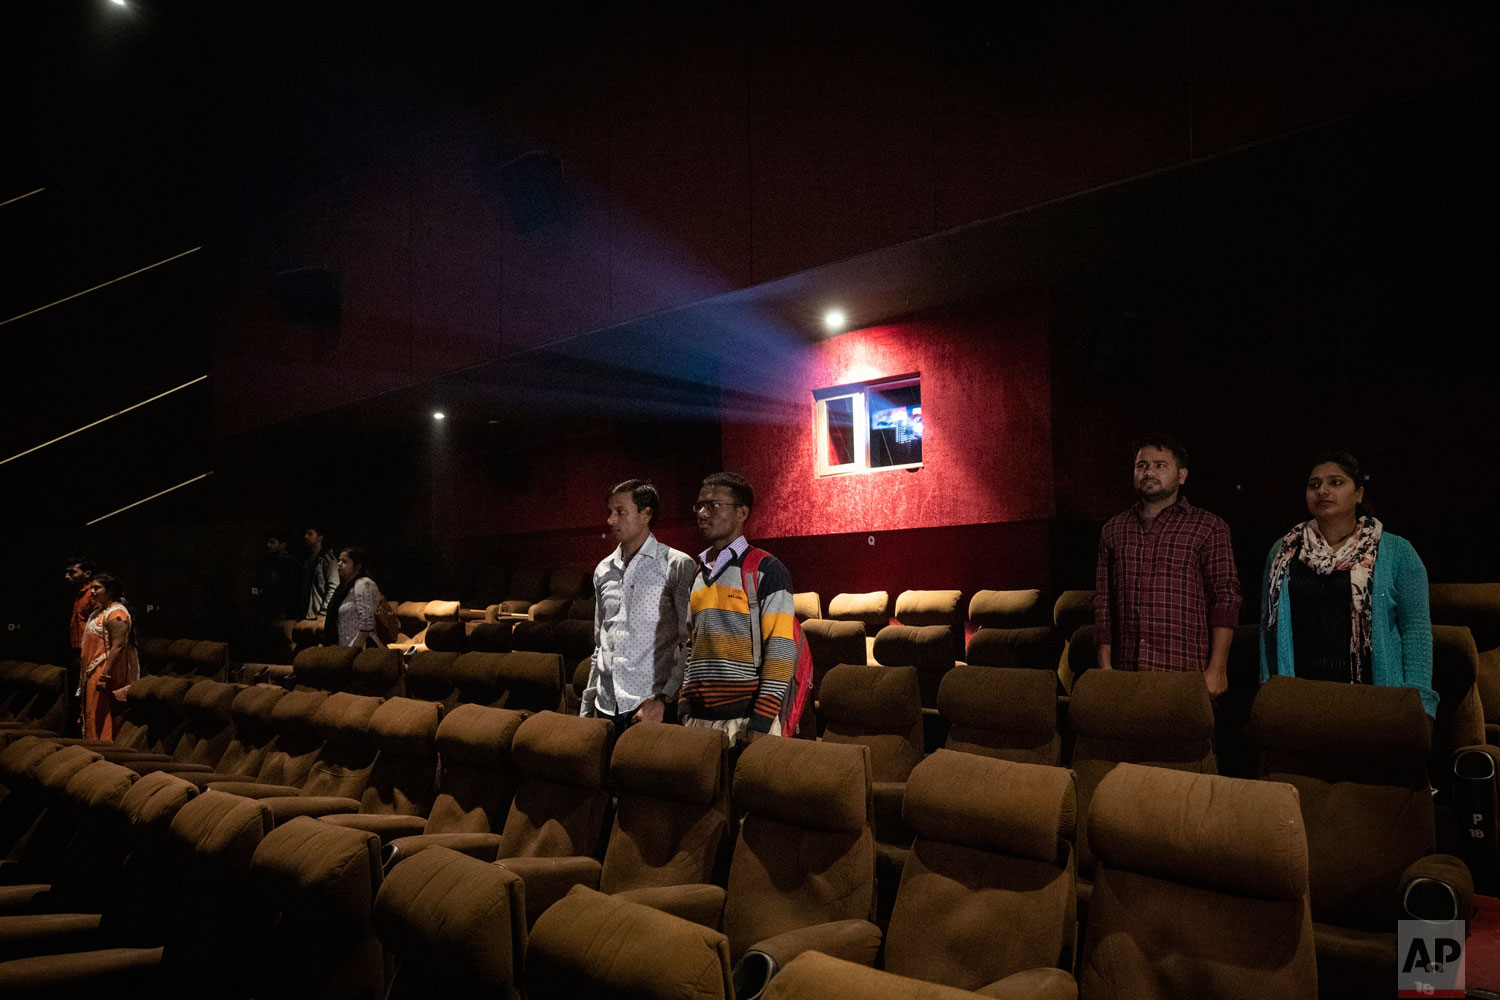 In this Monday, Nov. 26, 2018 photo, moviegoers stand as national anthem is played at a cinema before the screening of a movie in Lucknow, Uttar Pradesh, India. As with similar movements across the world, Hindu nationalism, once fringe, has now taken a central place in India's politics. (AP Photo/Bernat Armangue)